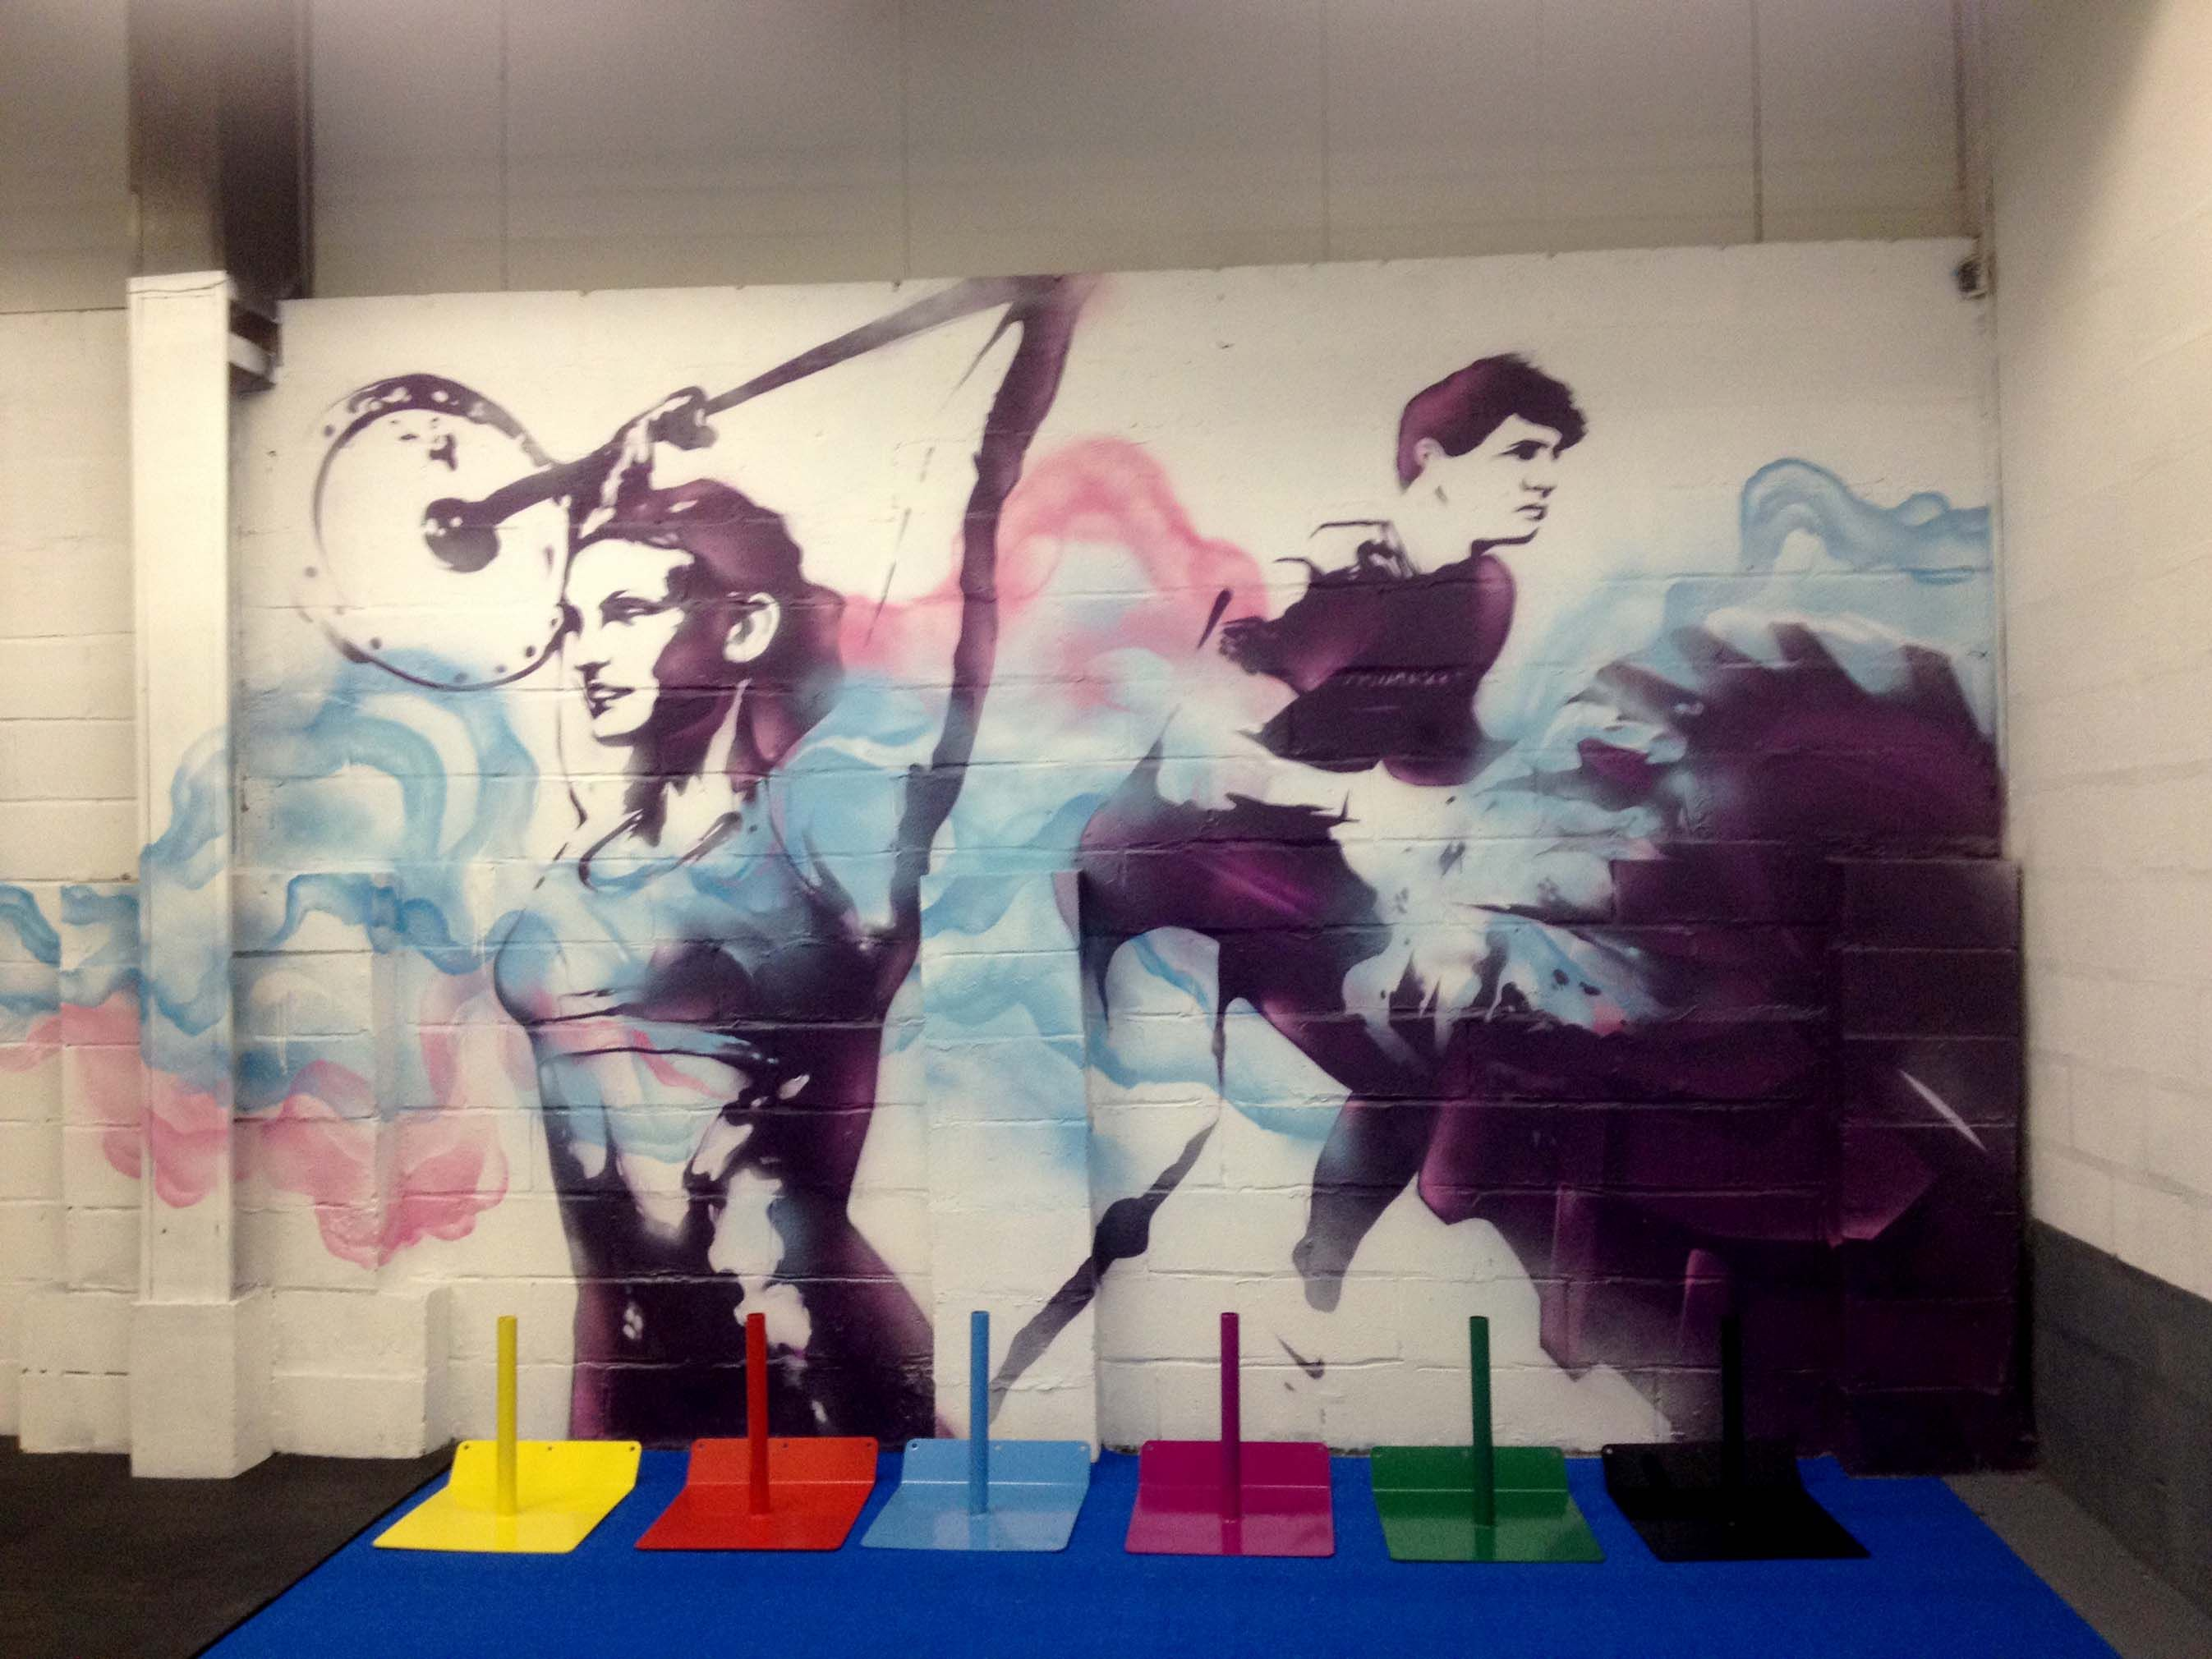 Graffiti wall training - New Crossfit Gym Mural For Wod House A Functional Fitness Centre Based In Cardiff